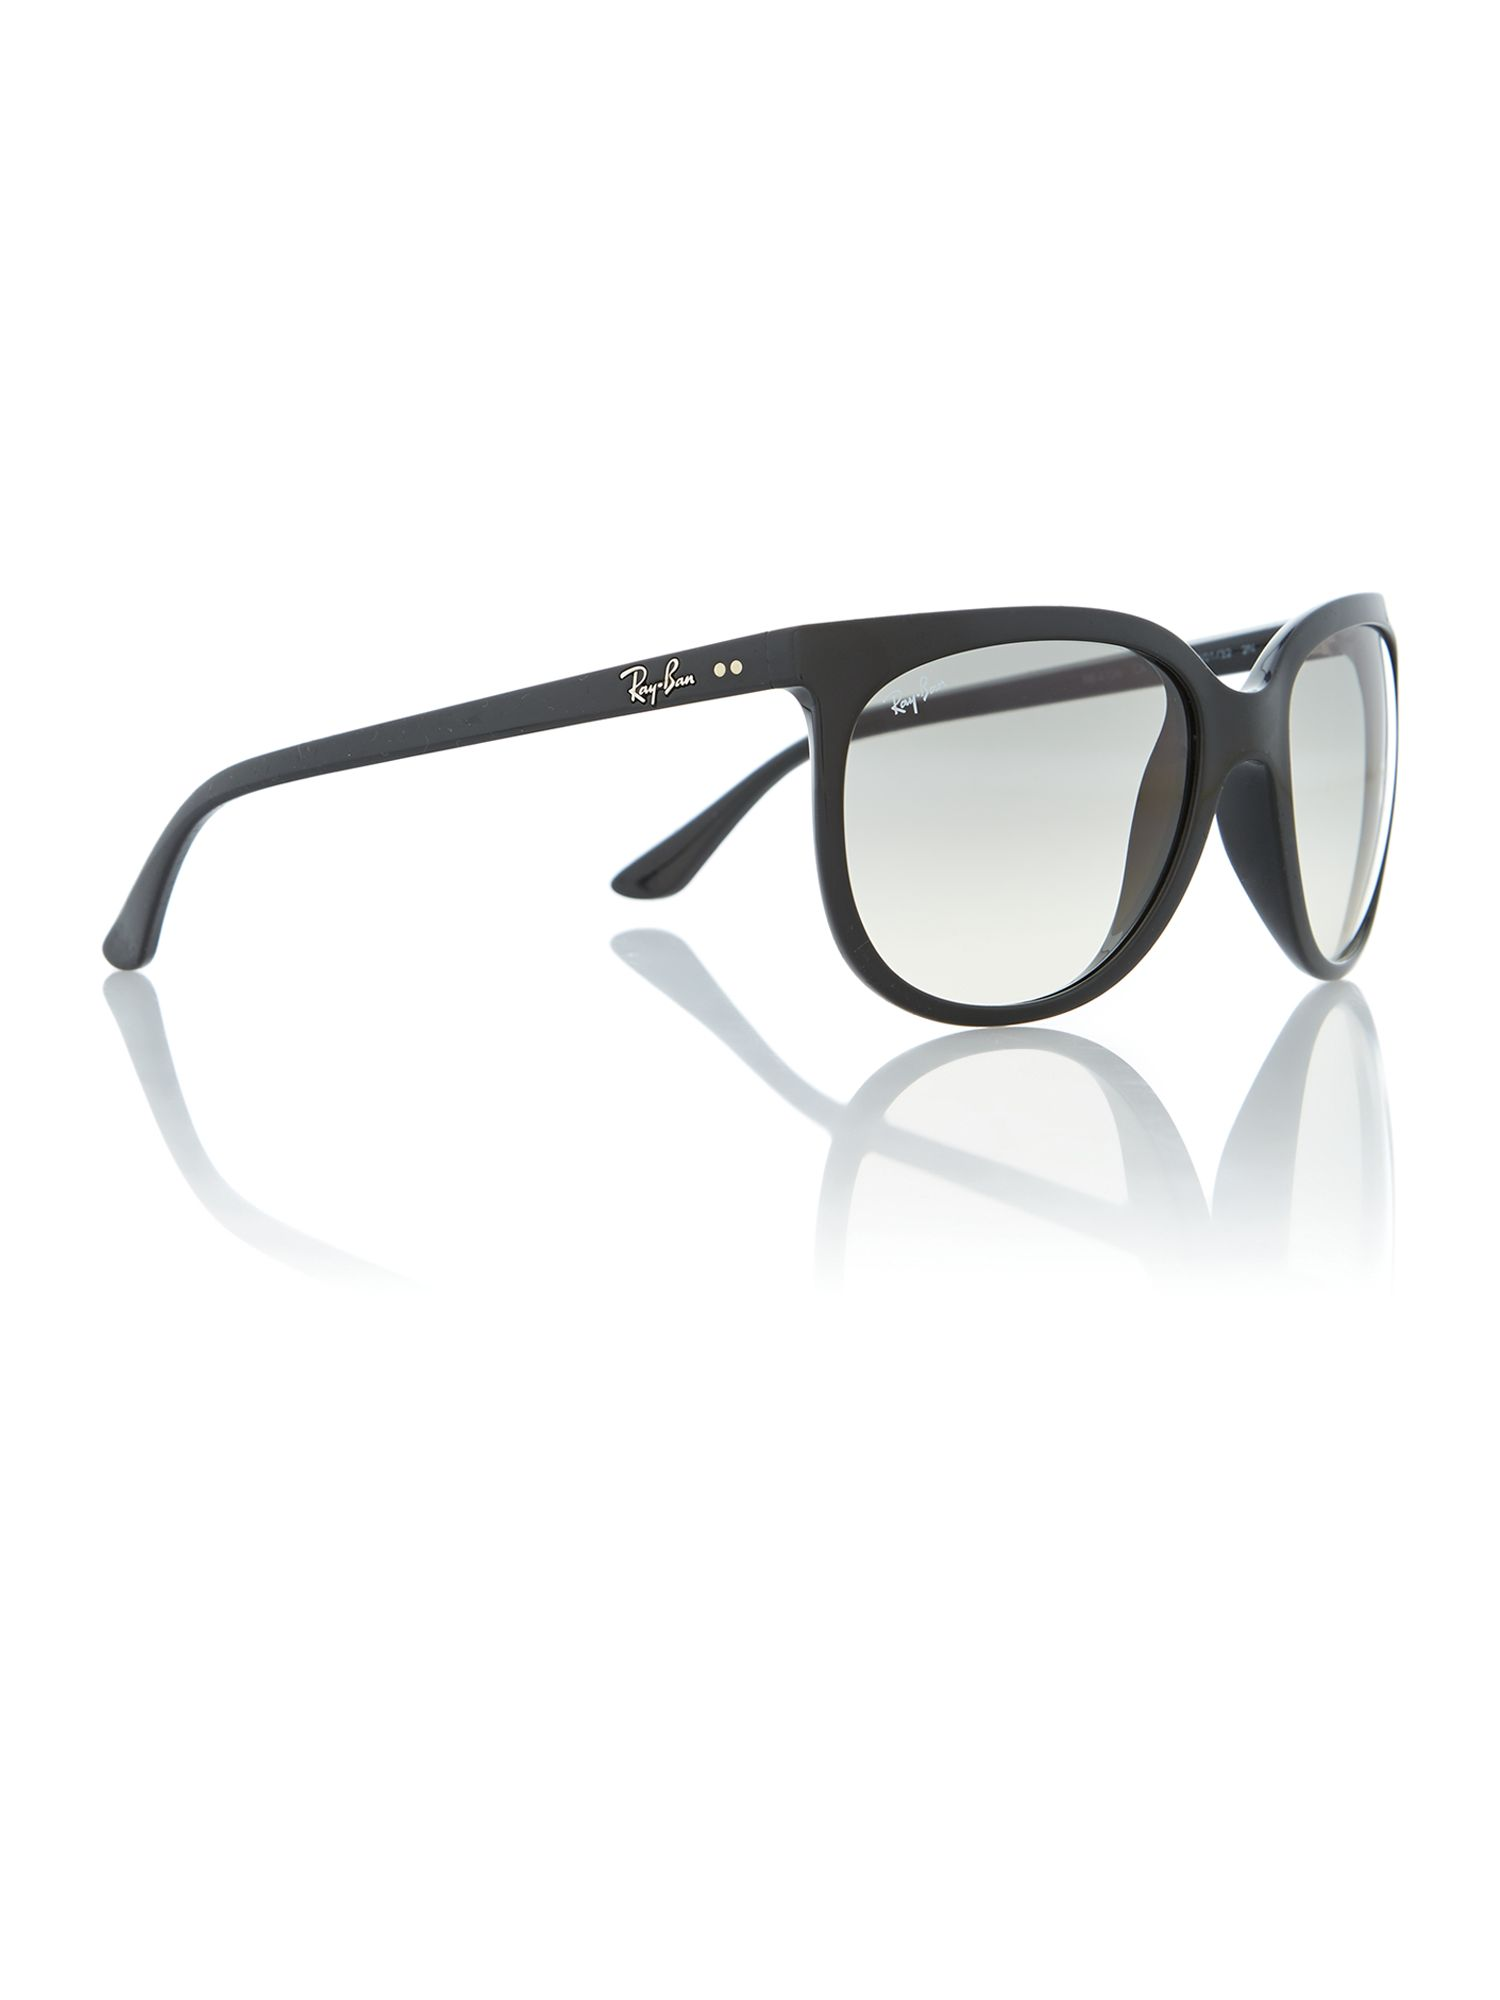 a45928fed2 Womens Ray Ban Sunglasses House Of Fraser « Heritage Malta